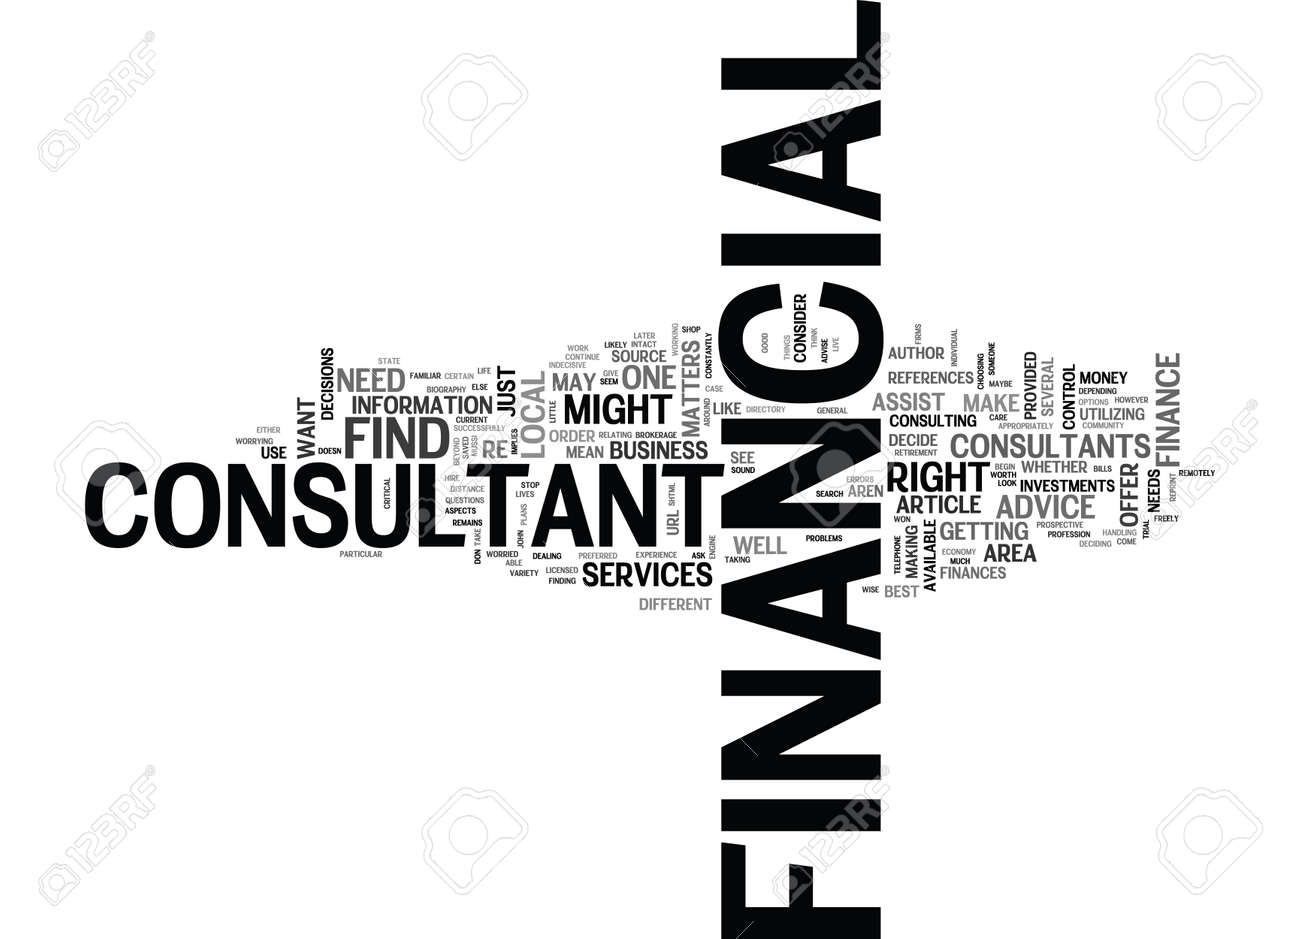 When To Use A Financial Consultant Text Word Cloud Concept Royalty